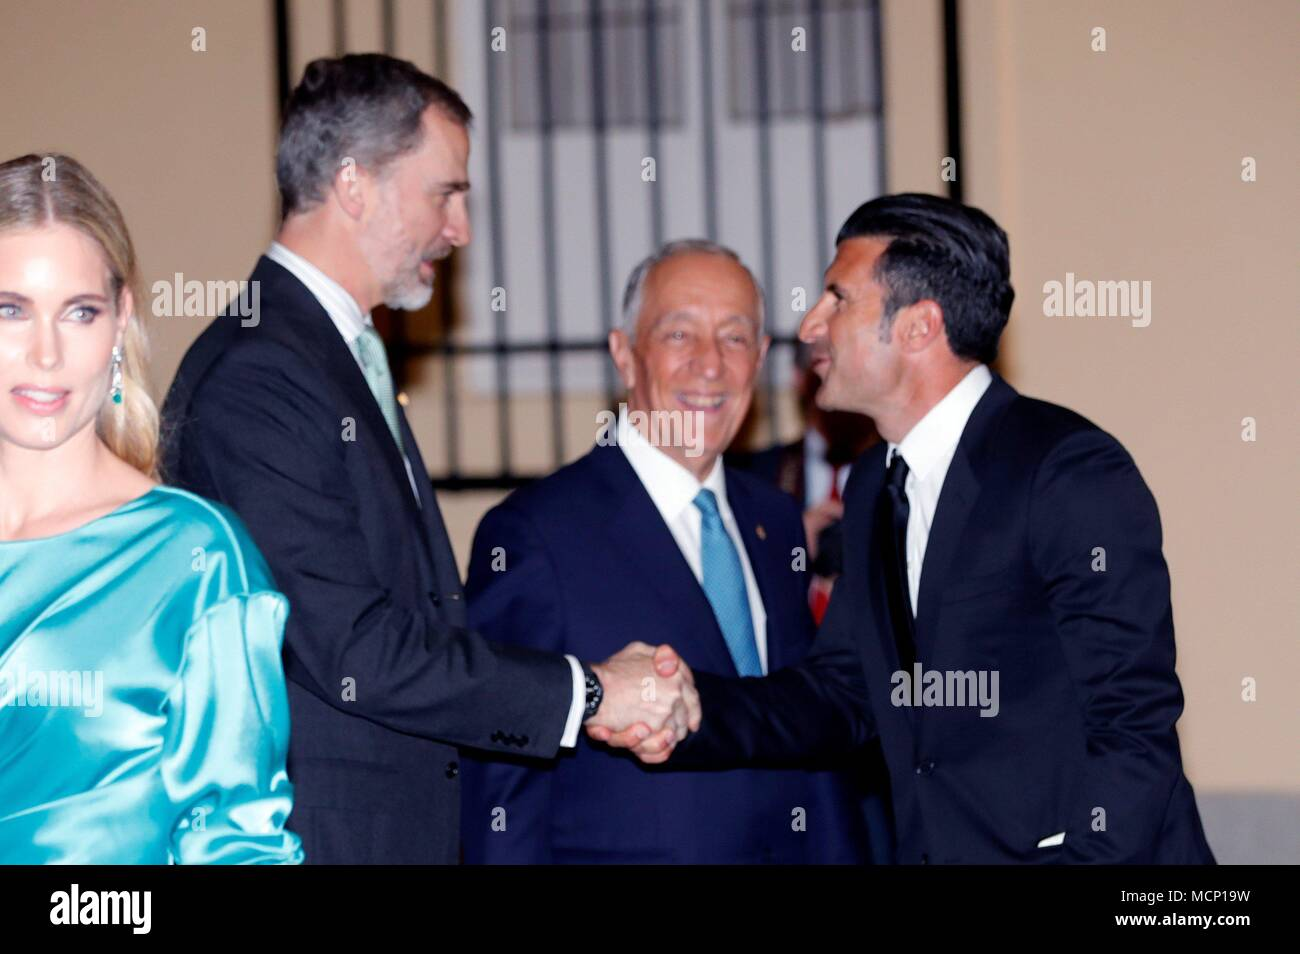 King felipe vi of spain 2l and portuguese president marcelo rebelo king felipe vi of spain 2l and portuguese president marcelo rebelo de sousa 2r greet portuguese former soccer player luis figo r and his wife helen m4hsunfo